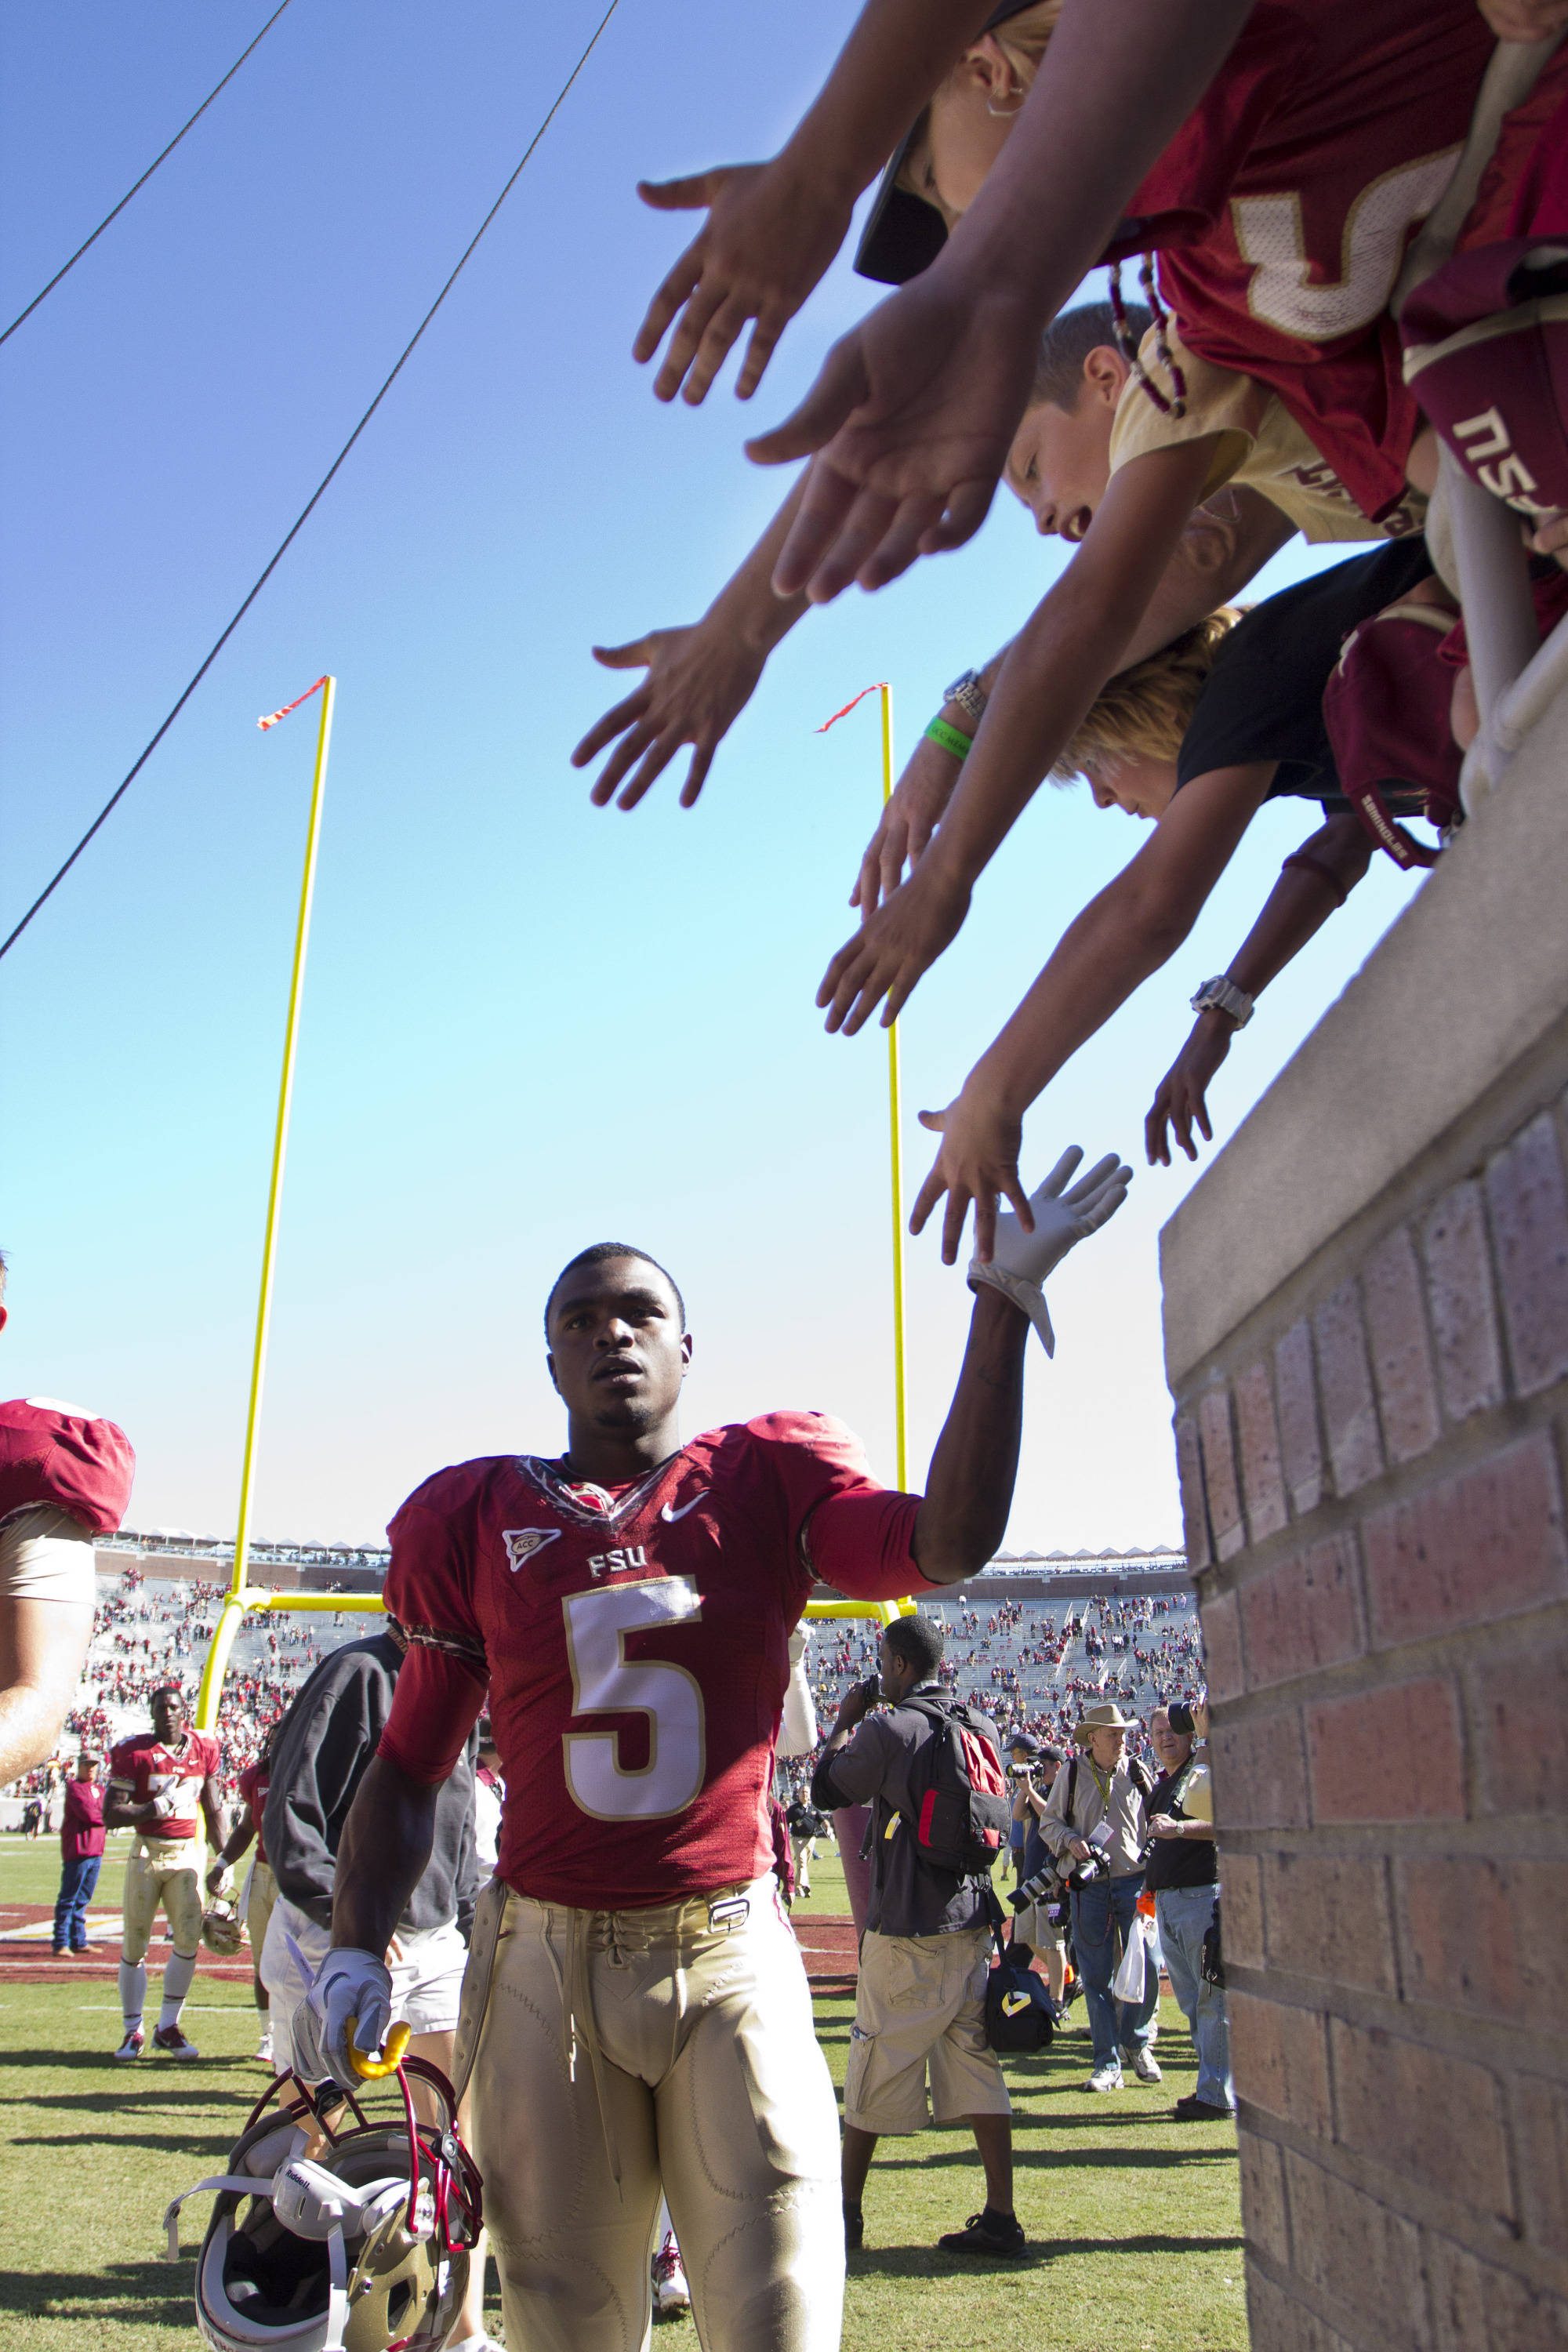 Fans greet the Seminoles after the football game against NC State on October 29, 2011.